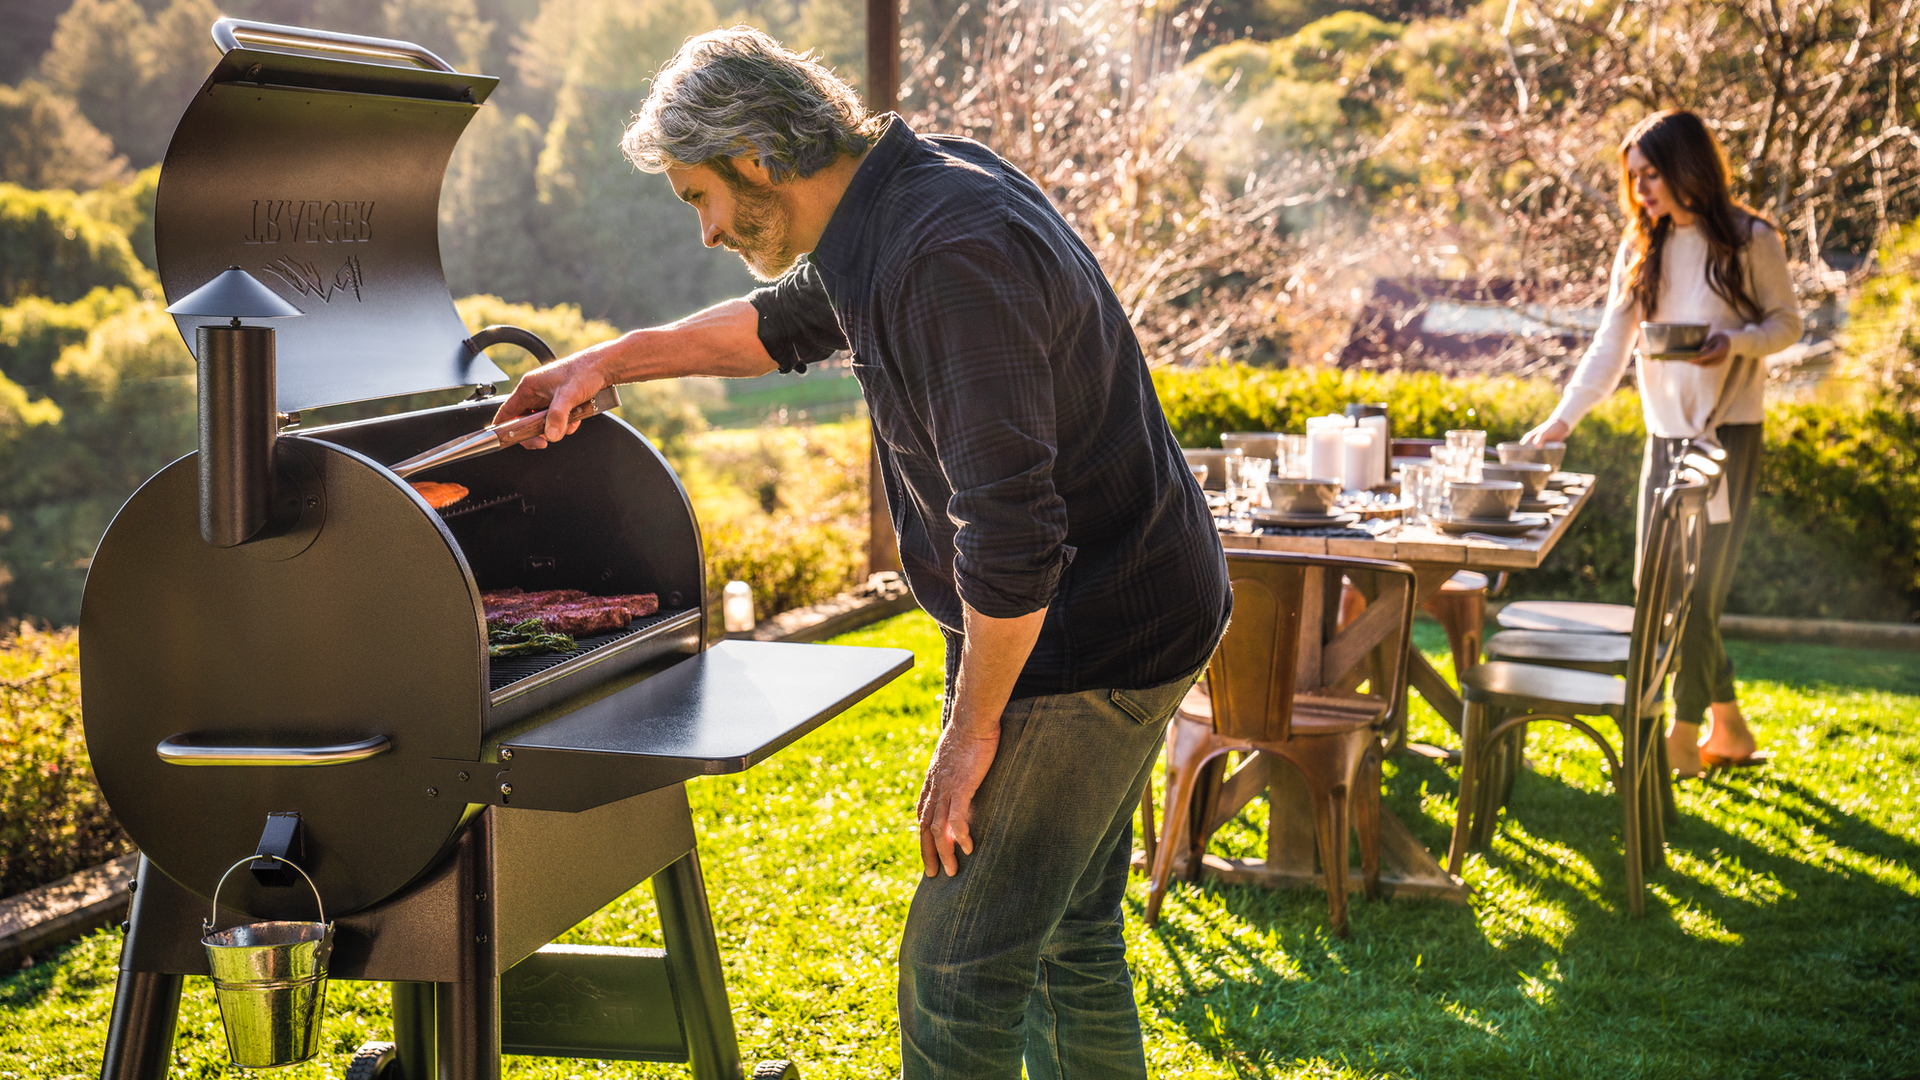 Best barbecue 2019: large BBQs, grills and smokers in succulent